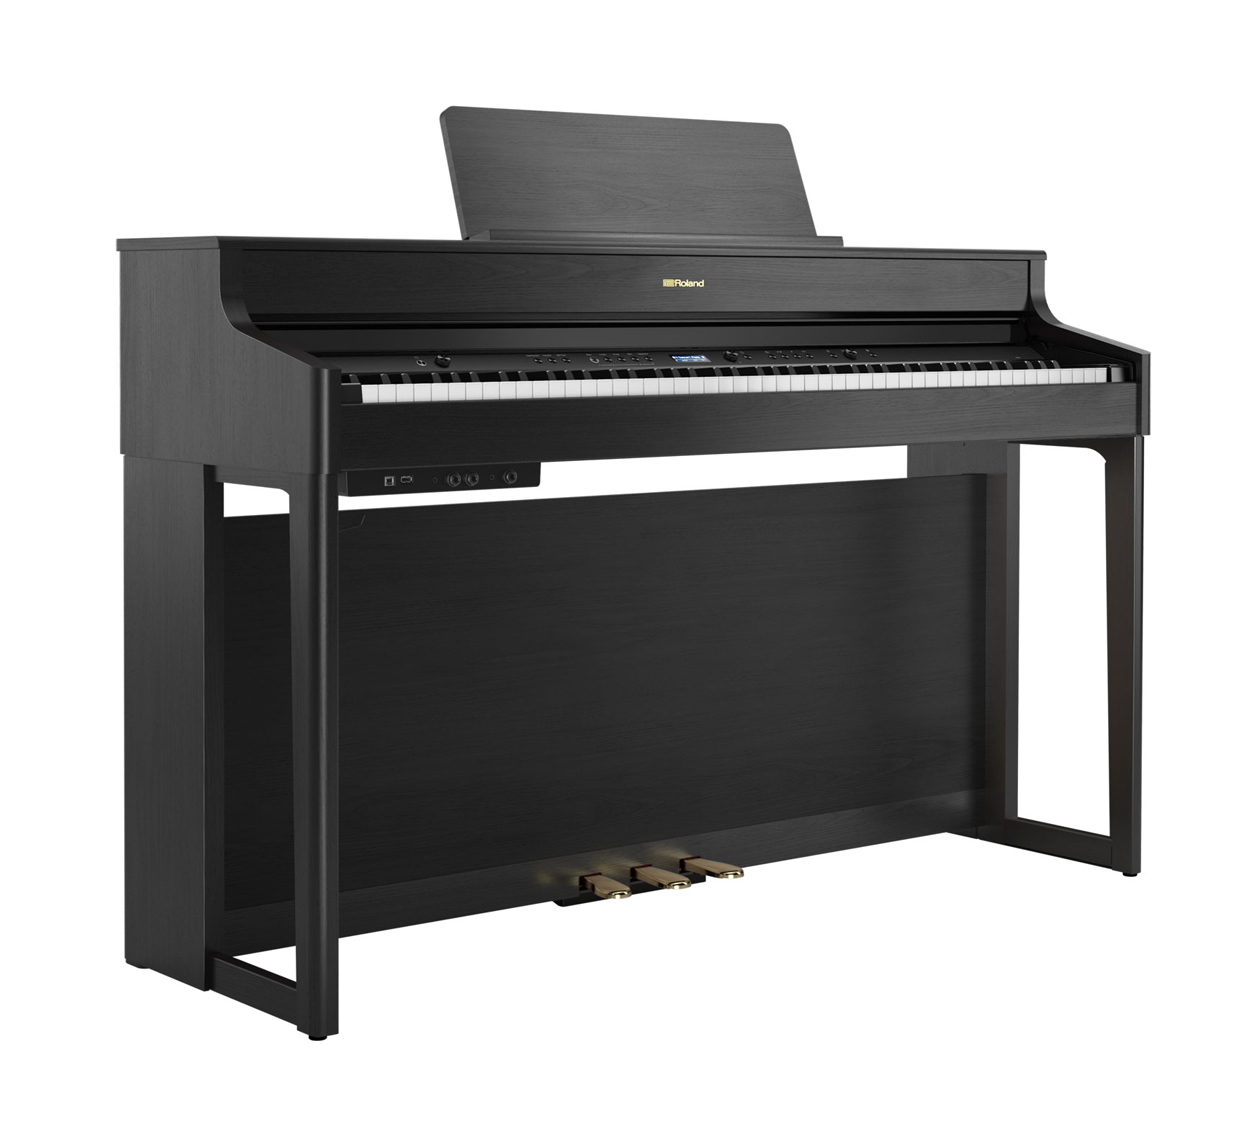 Main Gallery Image: Roland HP702 digital piano.